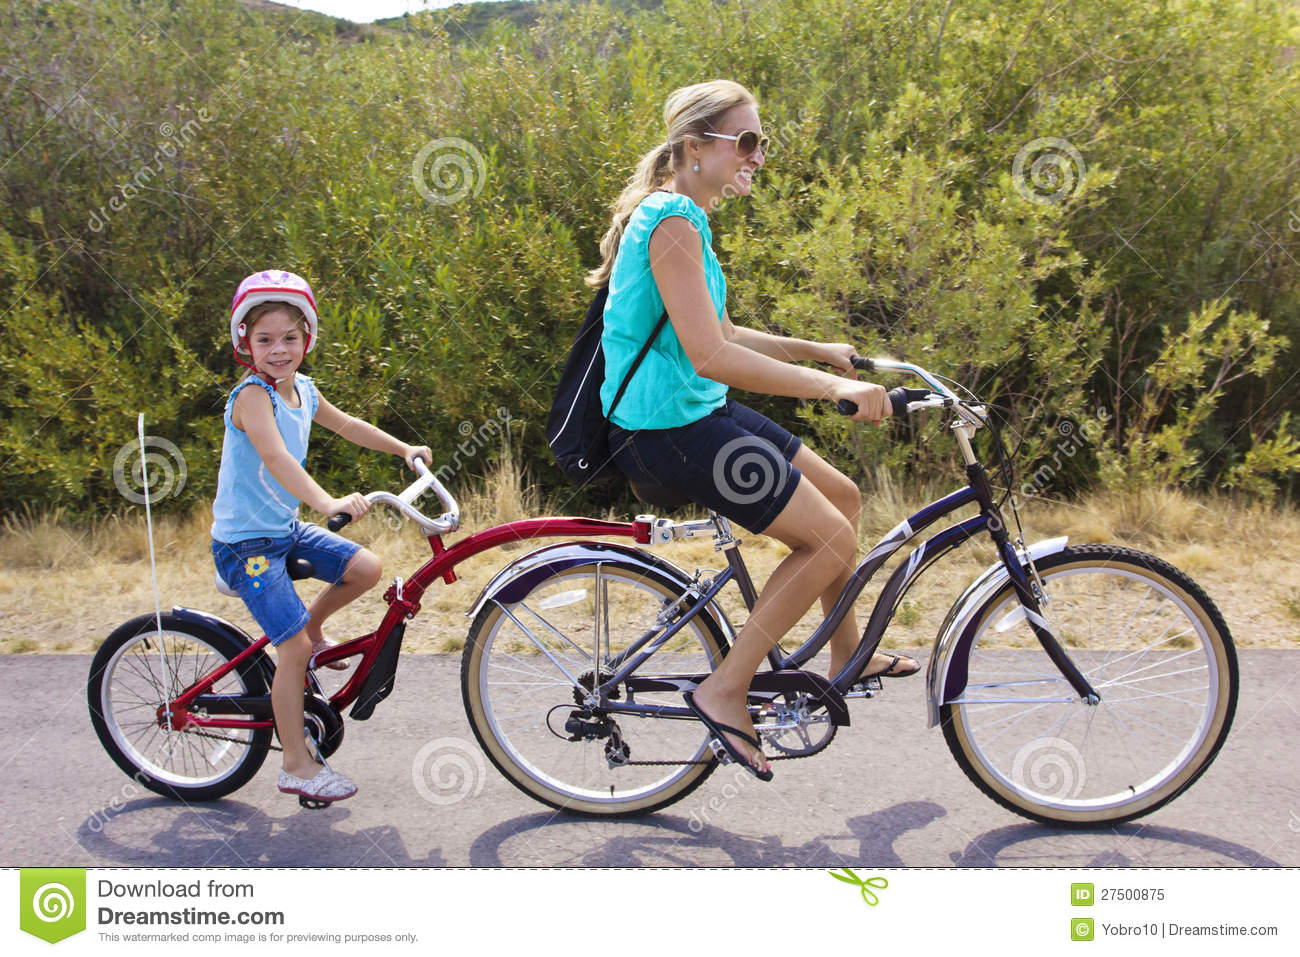 ... and daughter enjoying a tandem bicycle ride together on a bike path